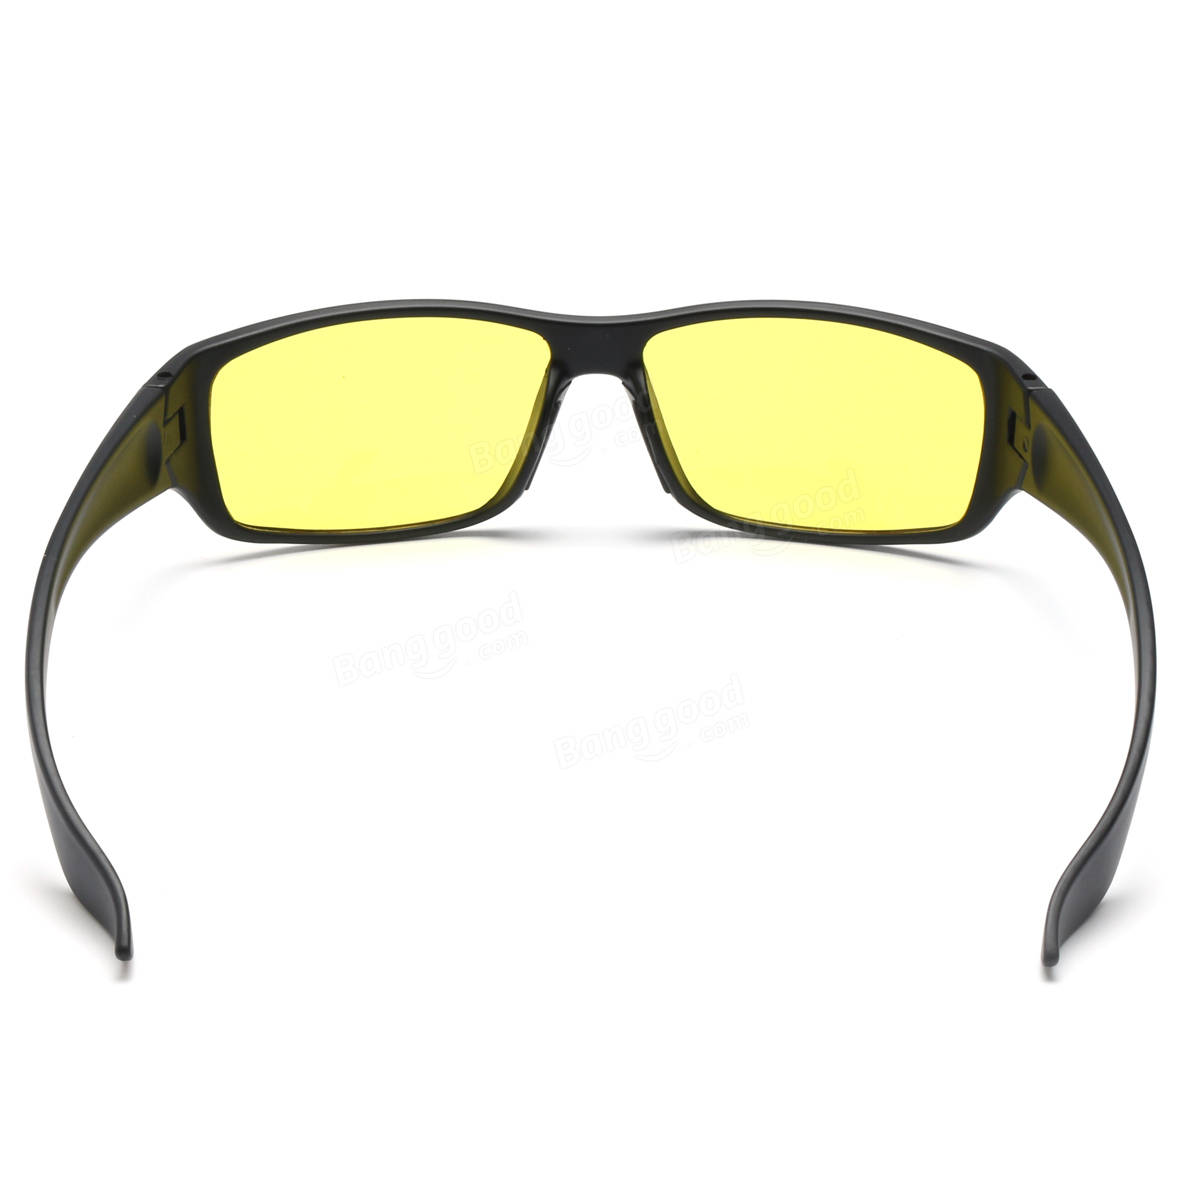 5c17ef3b3b Unisex Driving Anti Glare Night Vision Driver Safety UV Protection Glasses